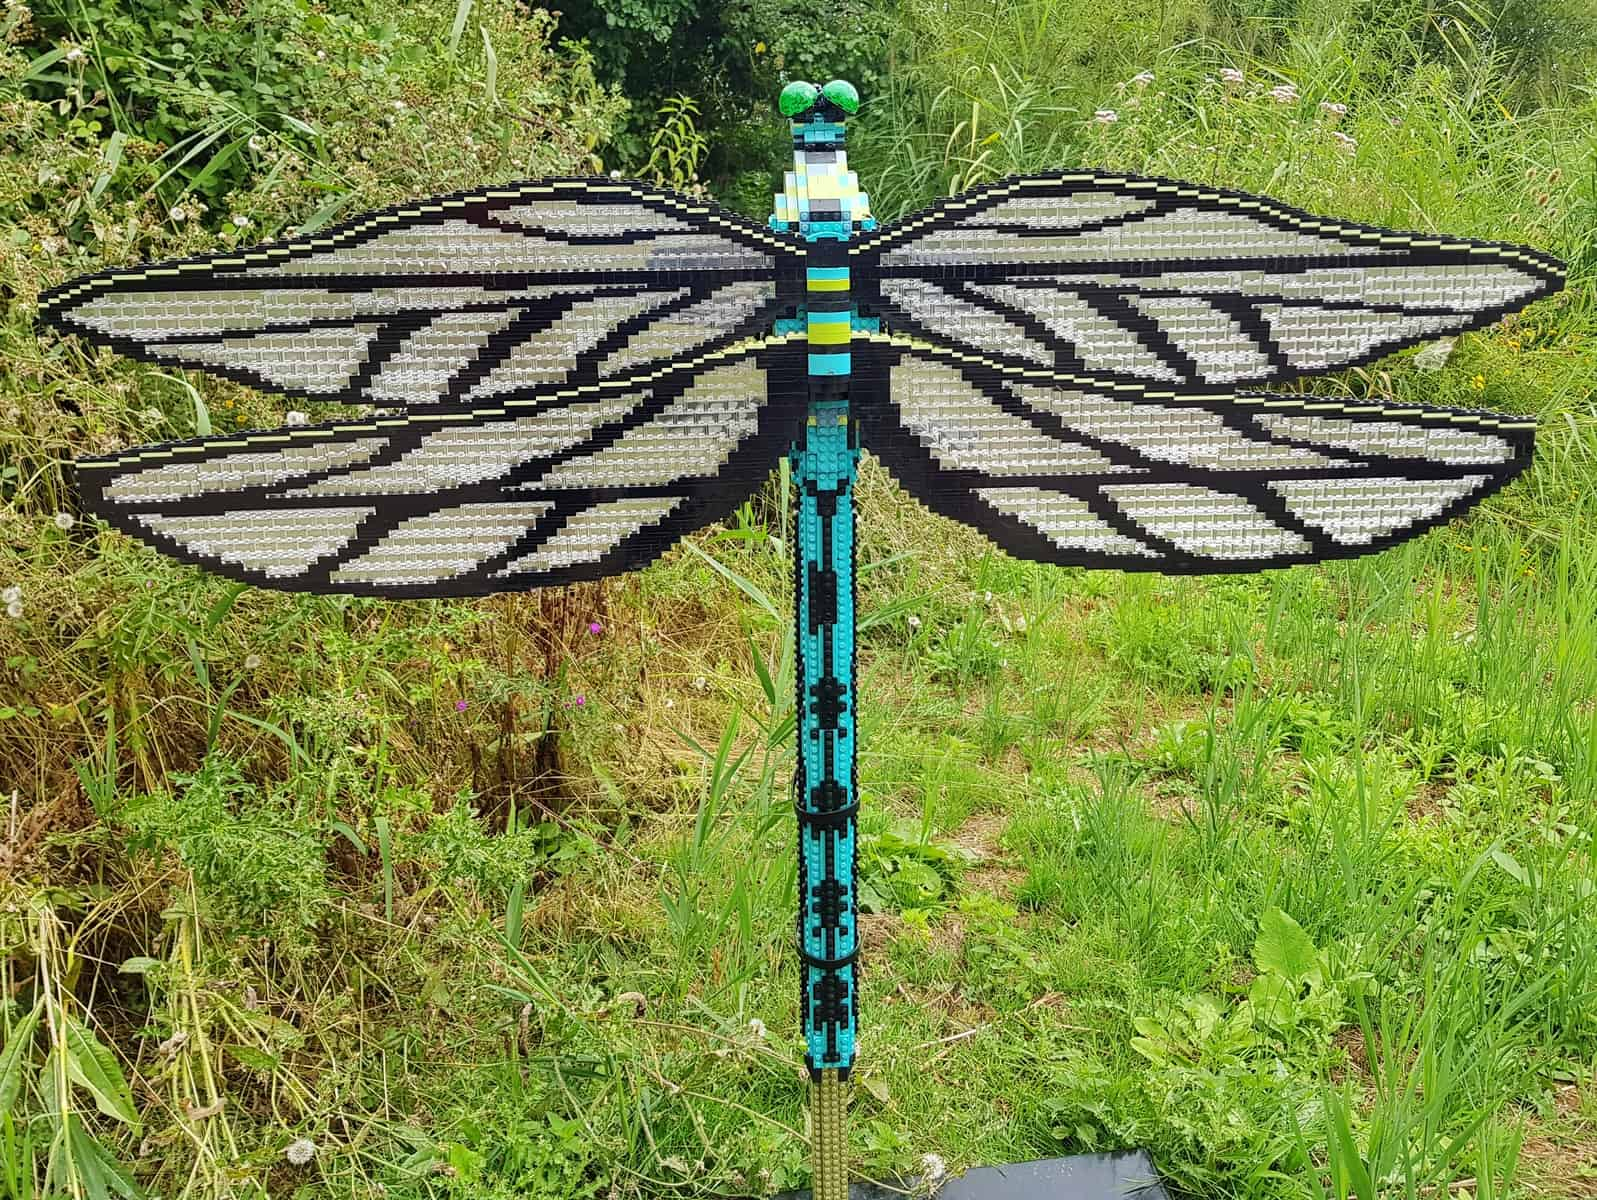 WWT Slimbridge, Gloucestershire - giant lego dragonfly